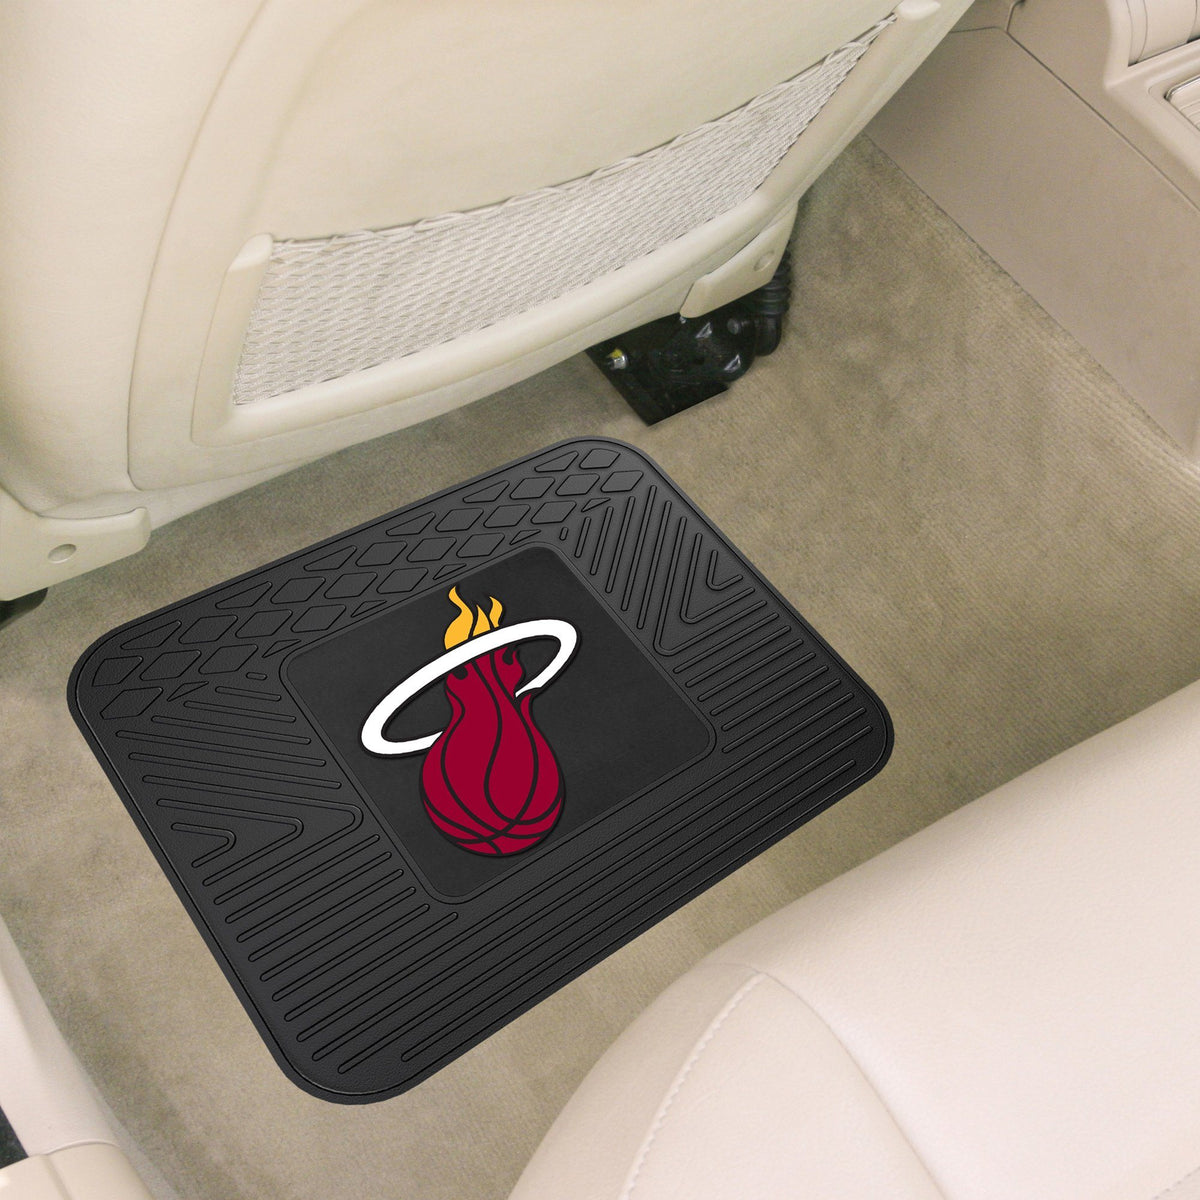 NBA - Utility Mat NBA Mats, Rear Car Mats, Utility Mat, NBA, Auto Fan Mats Miami Heat